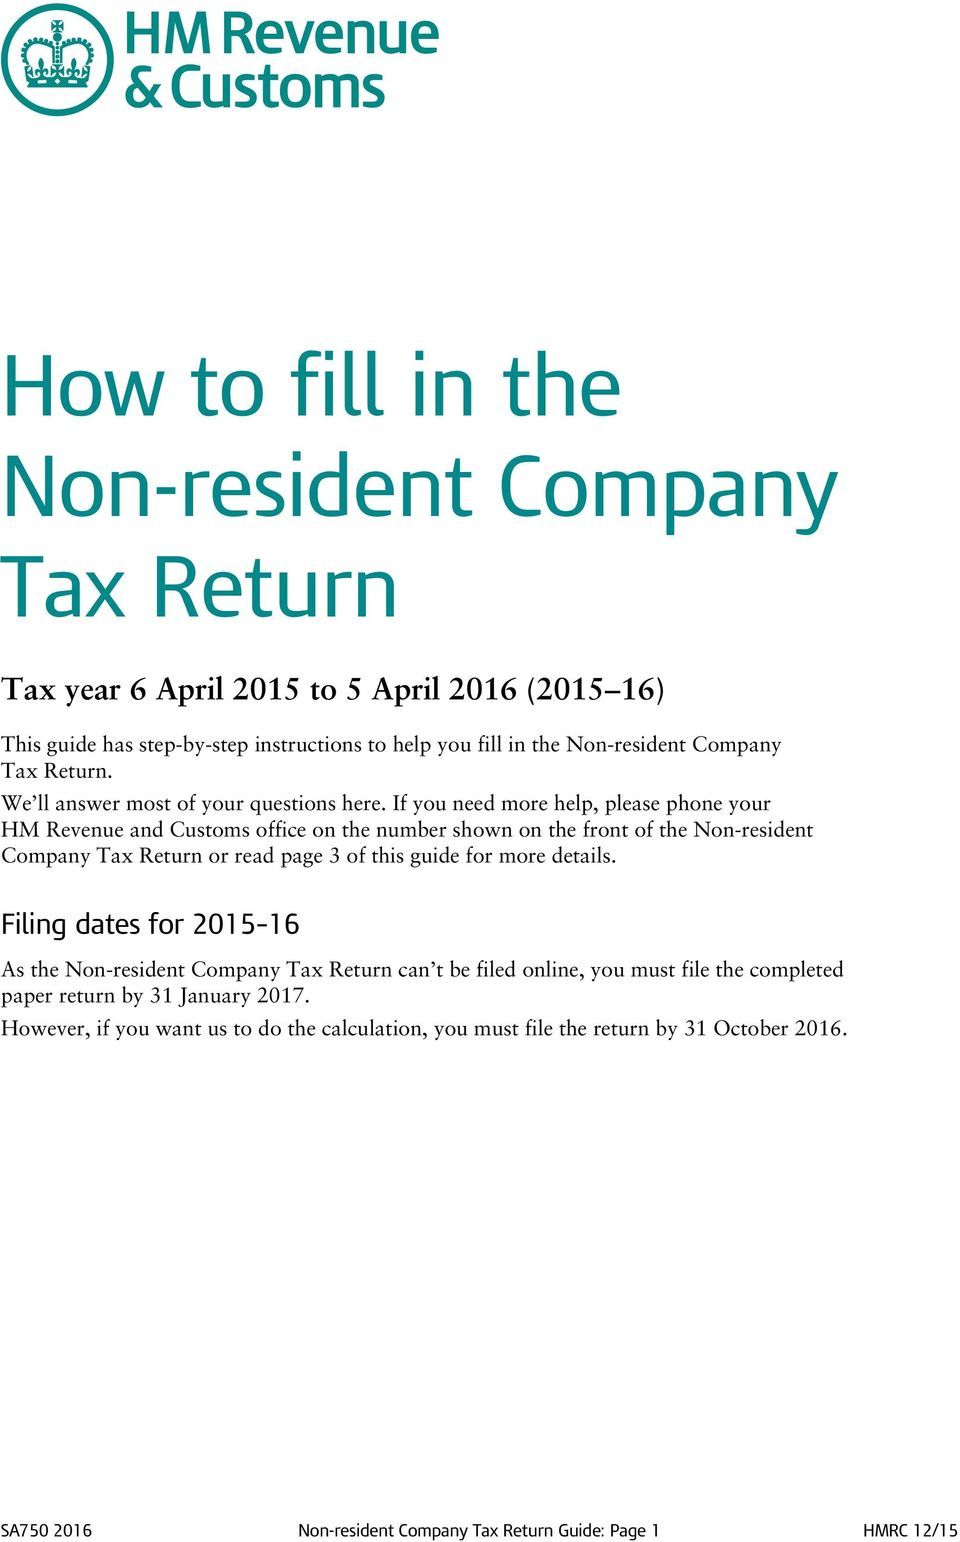 If you need more help, please phone your HM Revenue and Customs office on the number shown on the front of the Non-resident Company Tax Return or read page 3 of this guide for more